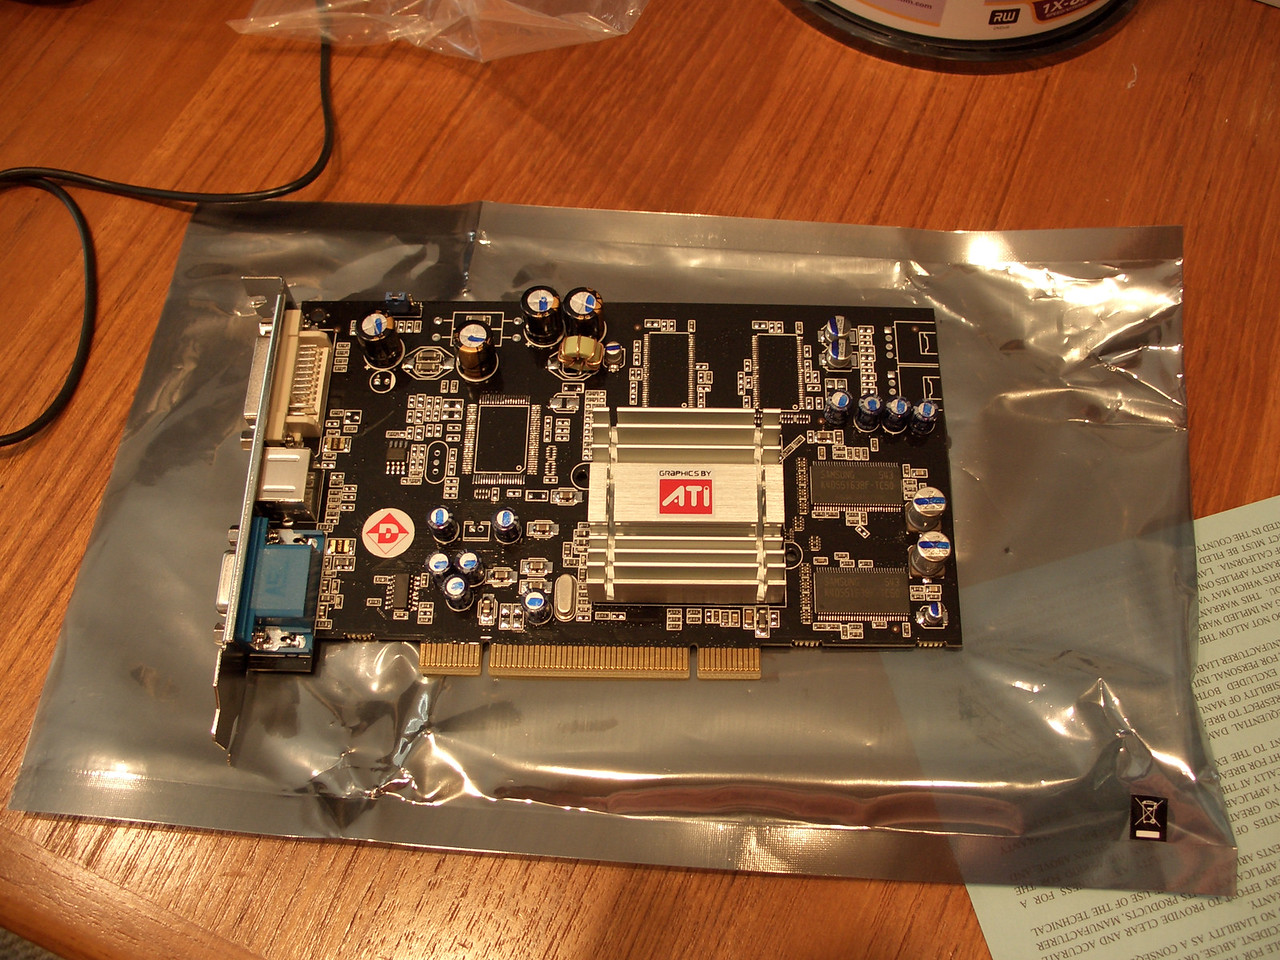 I couldn't help myself with this item.  The additional $70 for a better video card seemed worth it.  I specifically shopped models with no fans.  This Radeon 9250 holds 128MB video RAM and is PCI.  I was happy to have the DVI-out as well.   In retrospect, the motherboard on the ACER has an AGP slot, which would have been a better option.  Unfortunately, there wasn't a shred of info to that regard in the 'technical specs.'